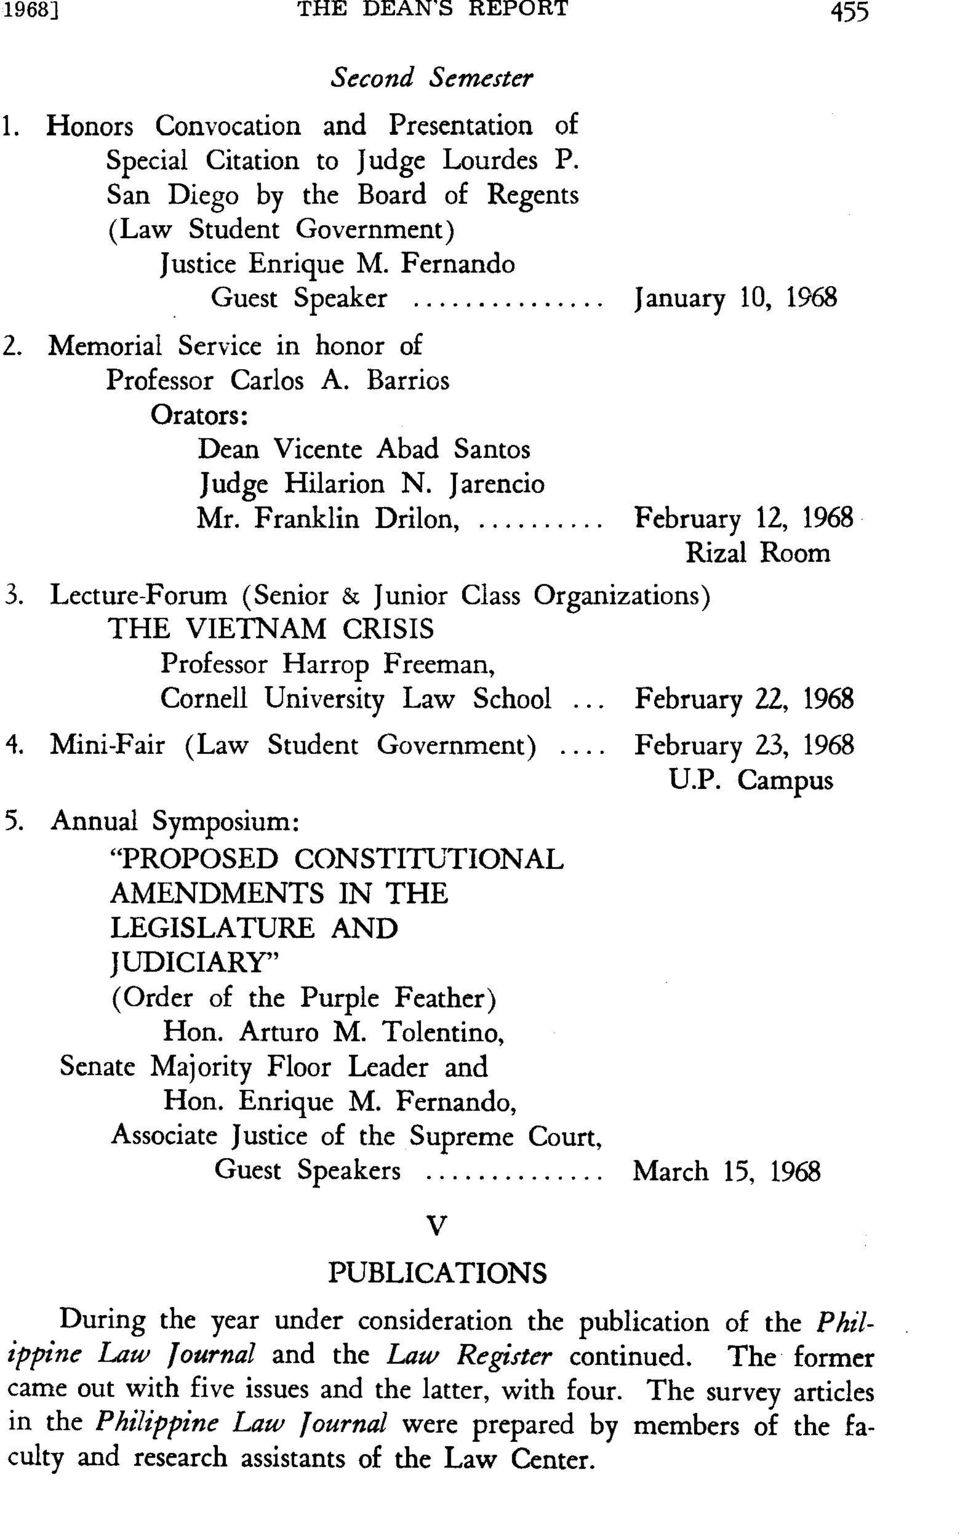 Lecture-Forum (Senior & Junior Class Organizations) THE VIETNAM CRISIS Professor Harrop Freeman, Cornell University Law School February 22, 1968 4. Mini-Fair (Law Student Government).